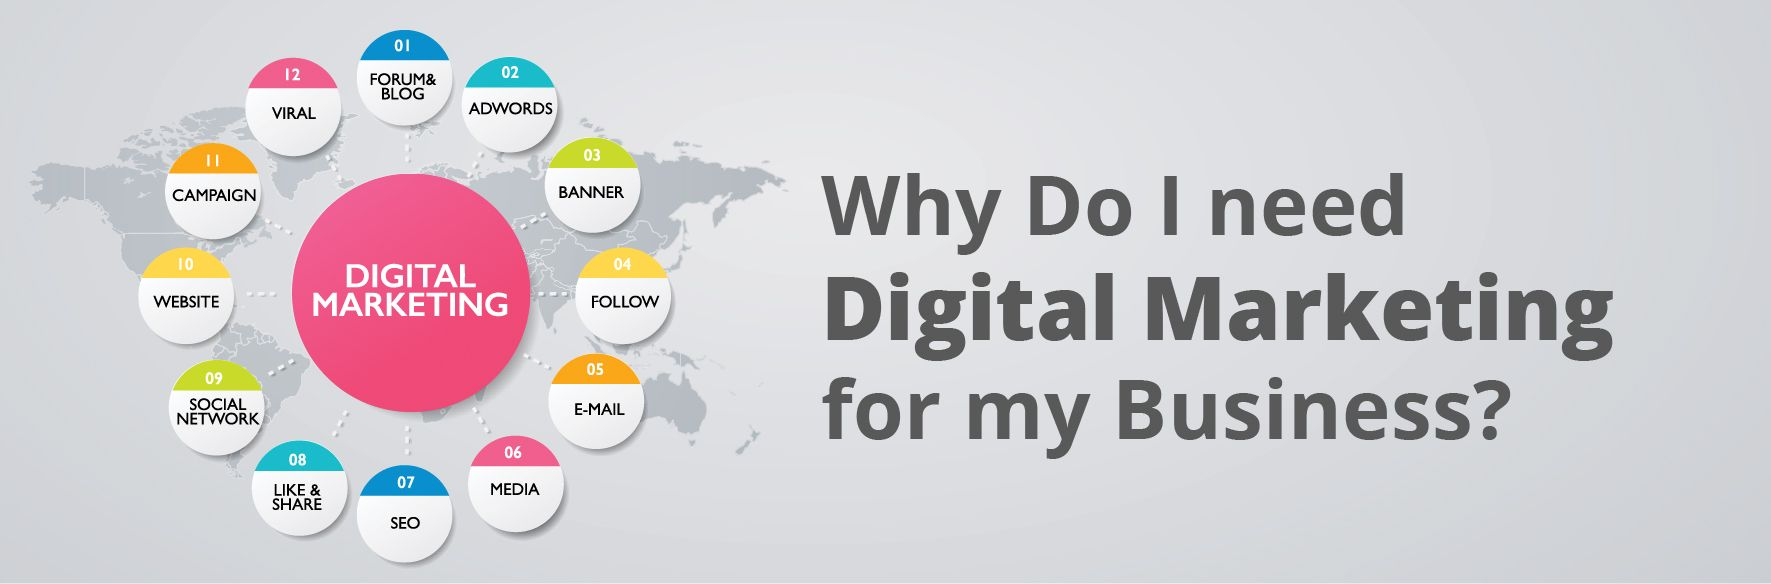 Why-Do-I-need-Digital-Marketing-for-my-Business